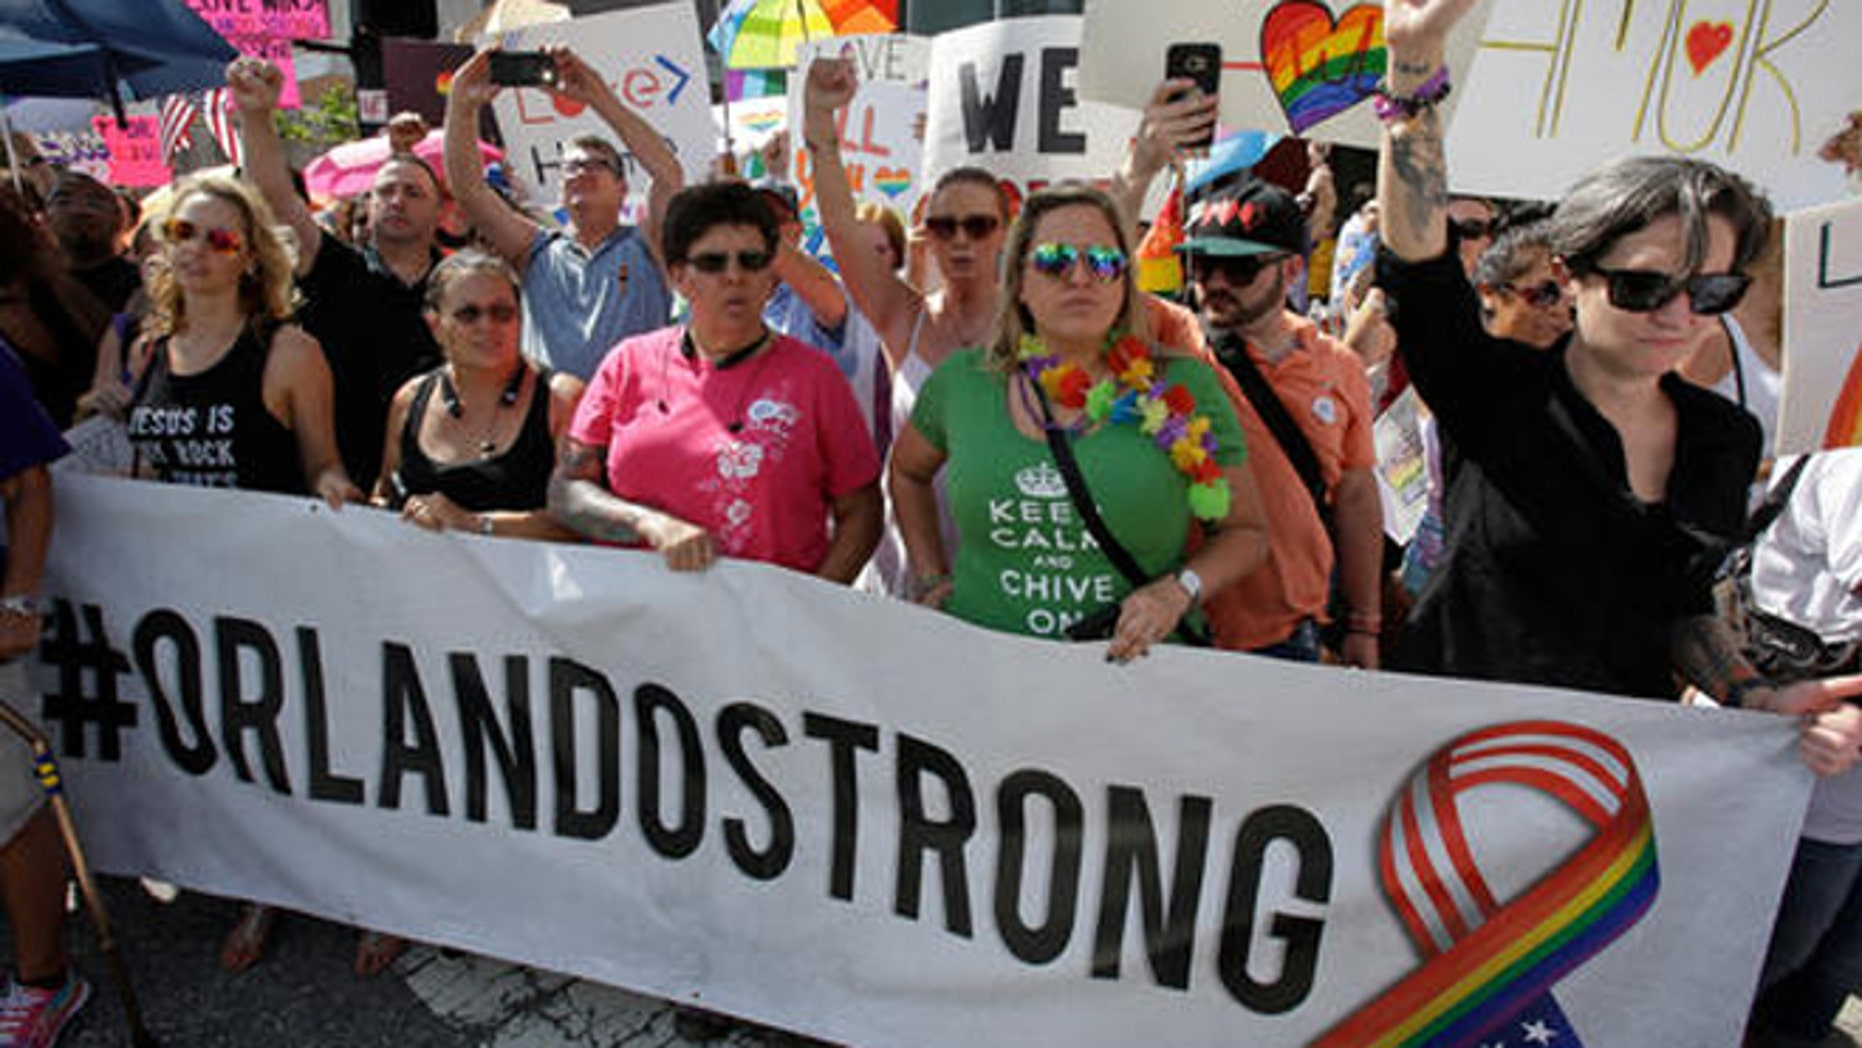 FILE- In this June 18, 2016 file photo, demonstrators show their support during the funeral service for Christopher Andrew Leinonen, one of the victims of the Pulse nightclub mass shooting, outside the Cathedral Church of St. Luke, in Orlando, Fla. Following the attack, other victims of mass shootings reached out to the survivors and their families to ensure that mistakes made with previous charity efforts were not repeated. (AP Photo/John Raoux, File)